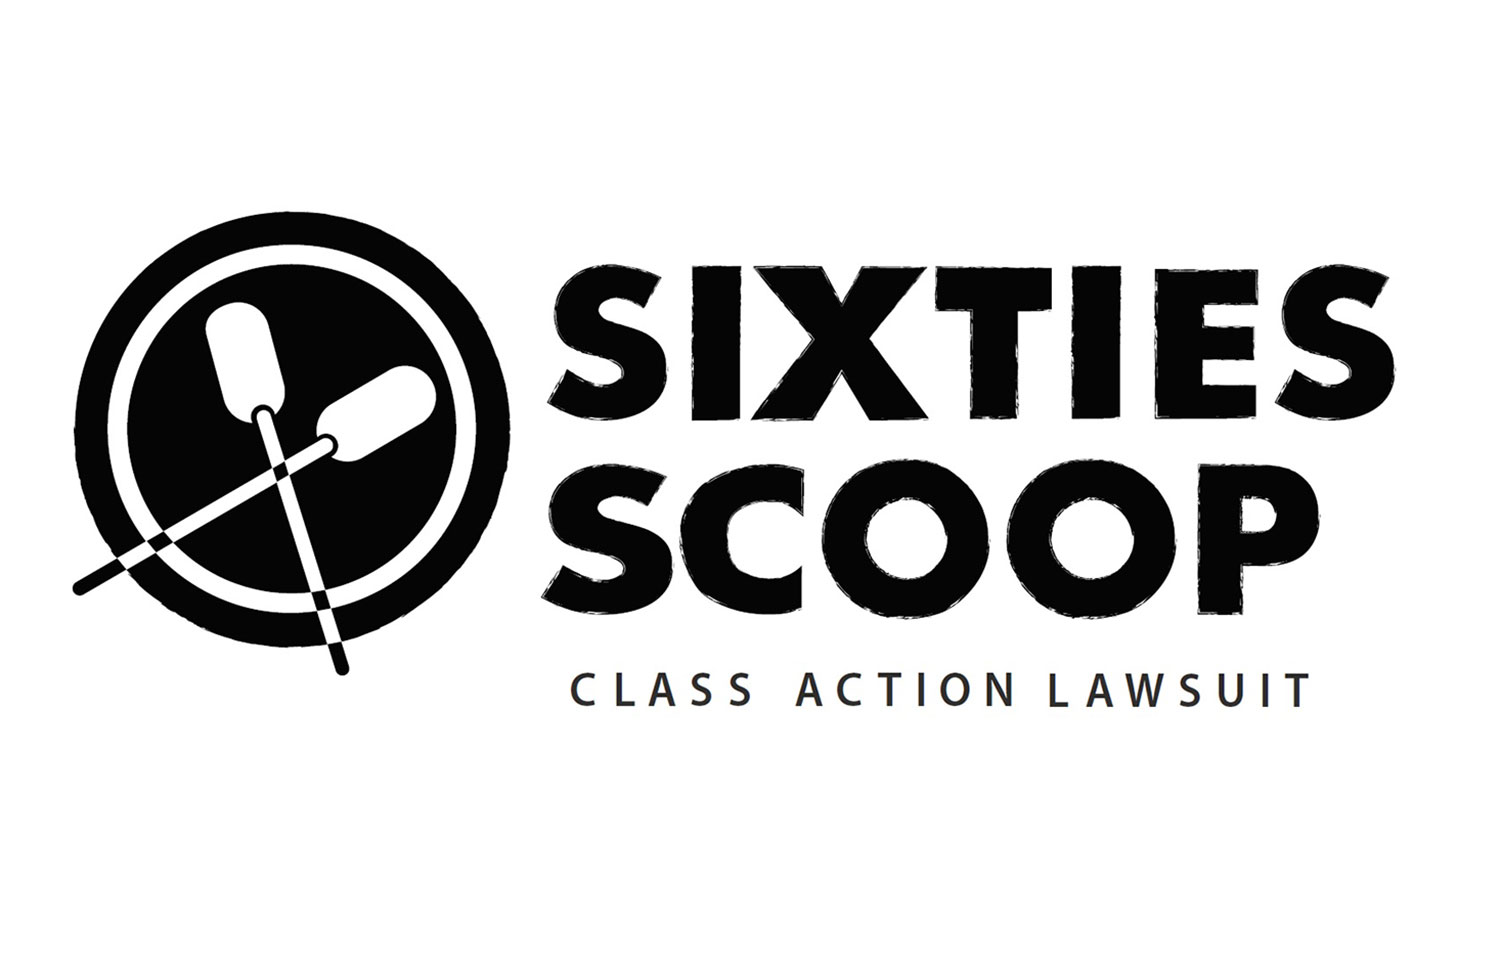 THE APPLICATION DEADLINE FOR THE SIXTIES SCOOP CLASS ACTION